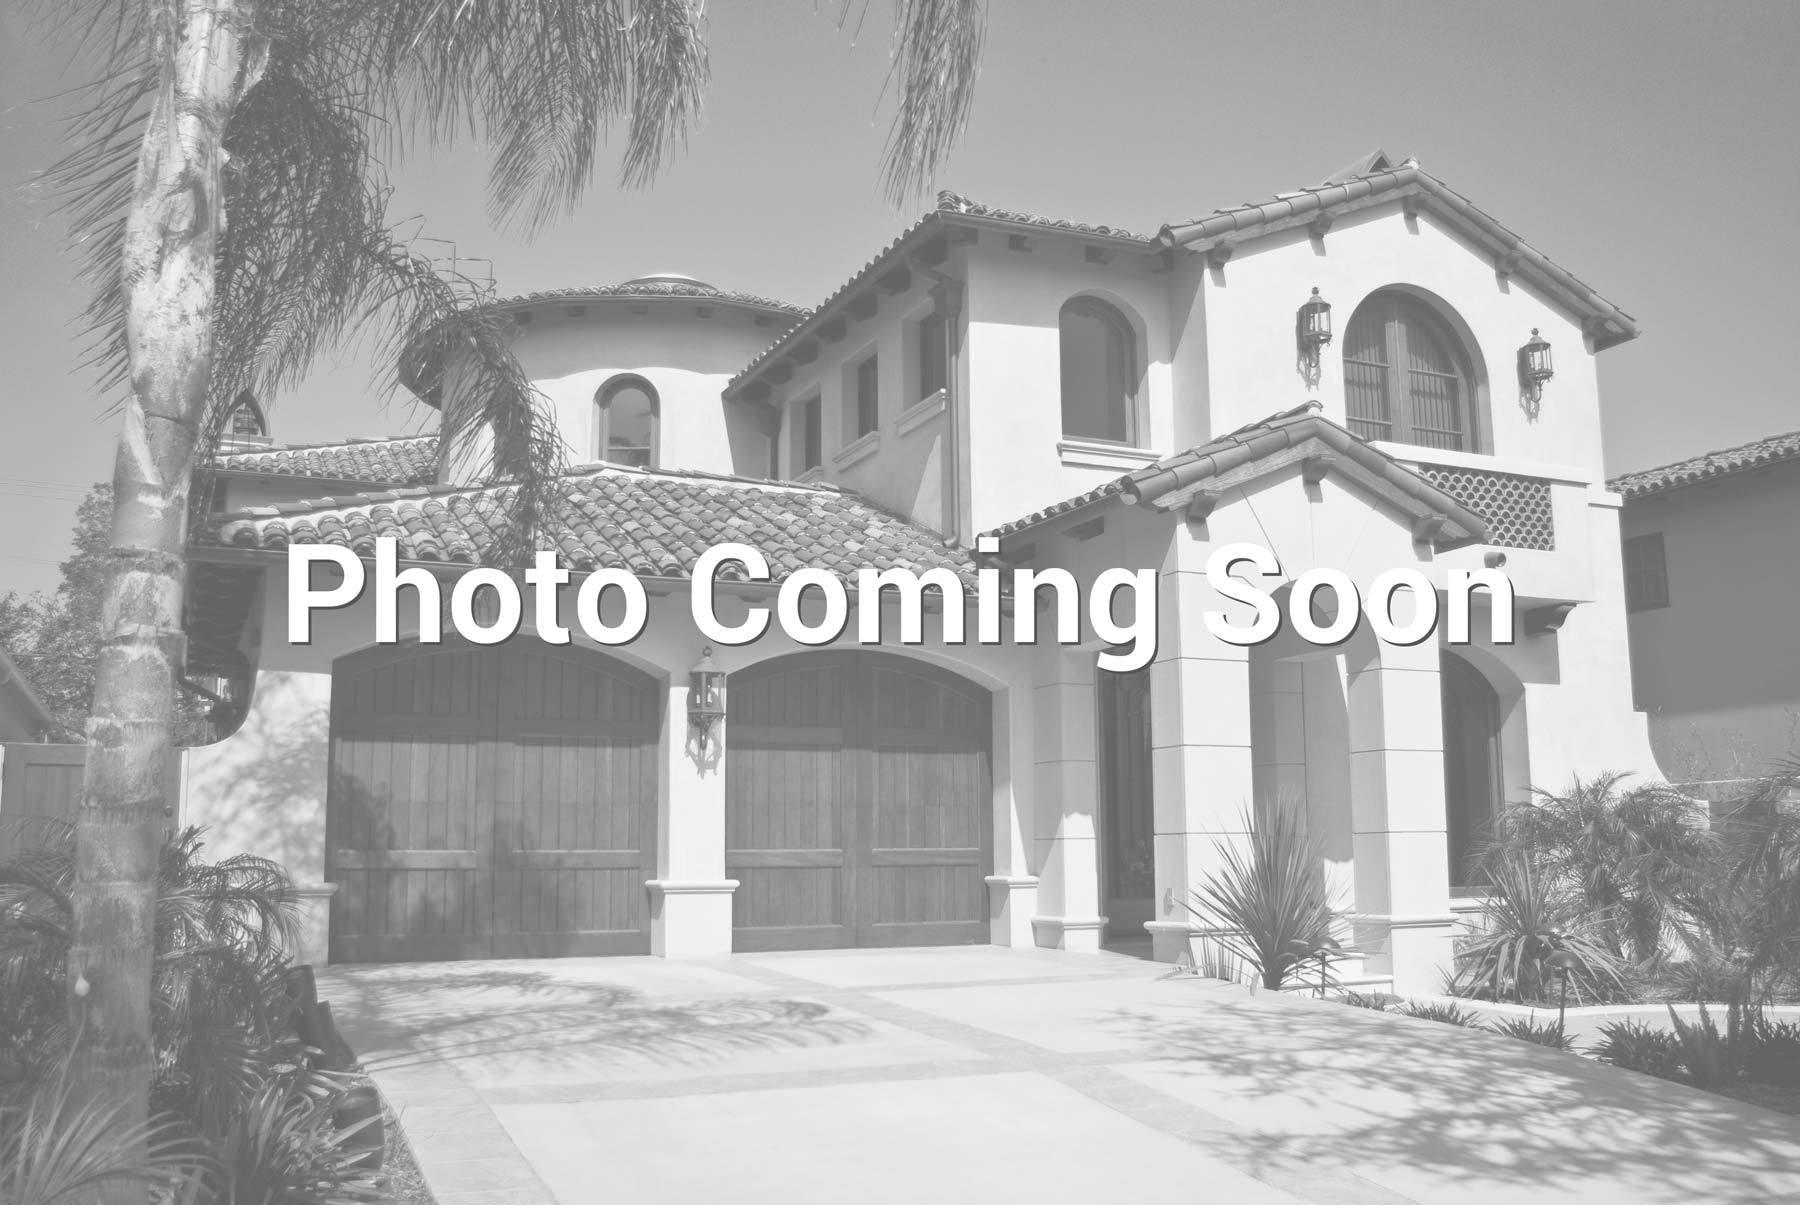 $599,900 - 5Br/3Ba - Home for Sale in Mcdowell Mountain Ranch Parcel B, Scottsdale